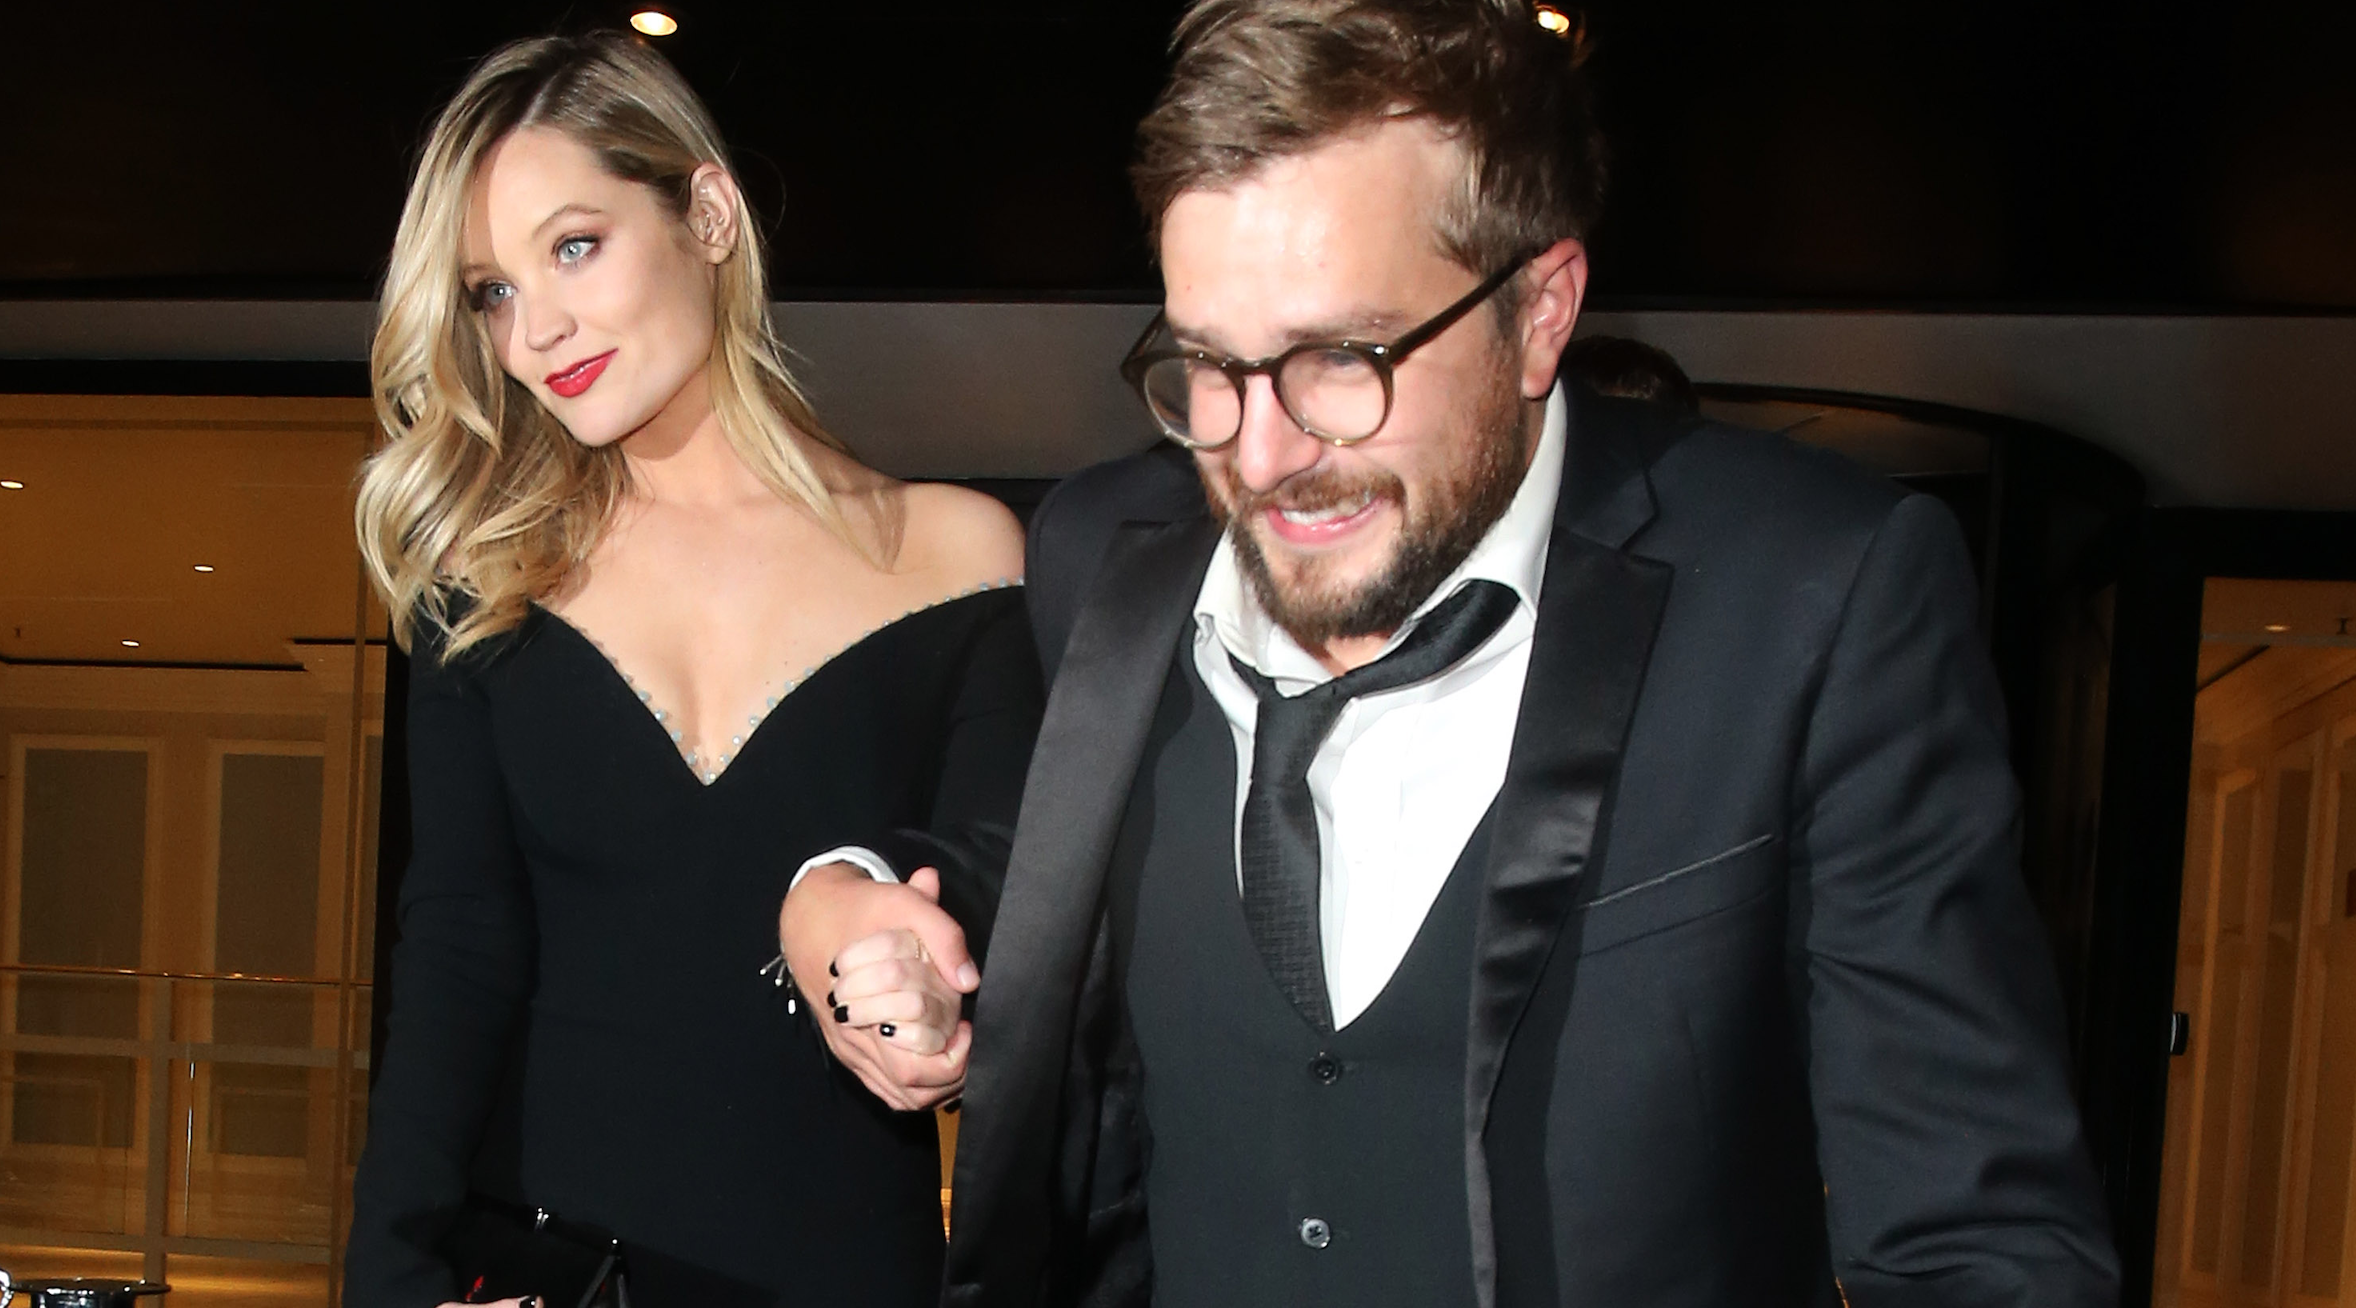 Love Island stars Laura Whitmore and Iain Stirling 'engaged following holiday proposal'